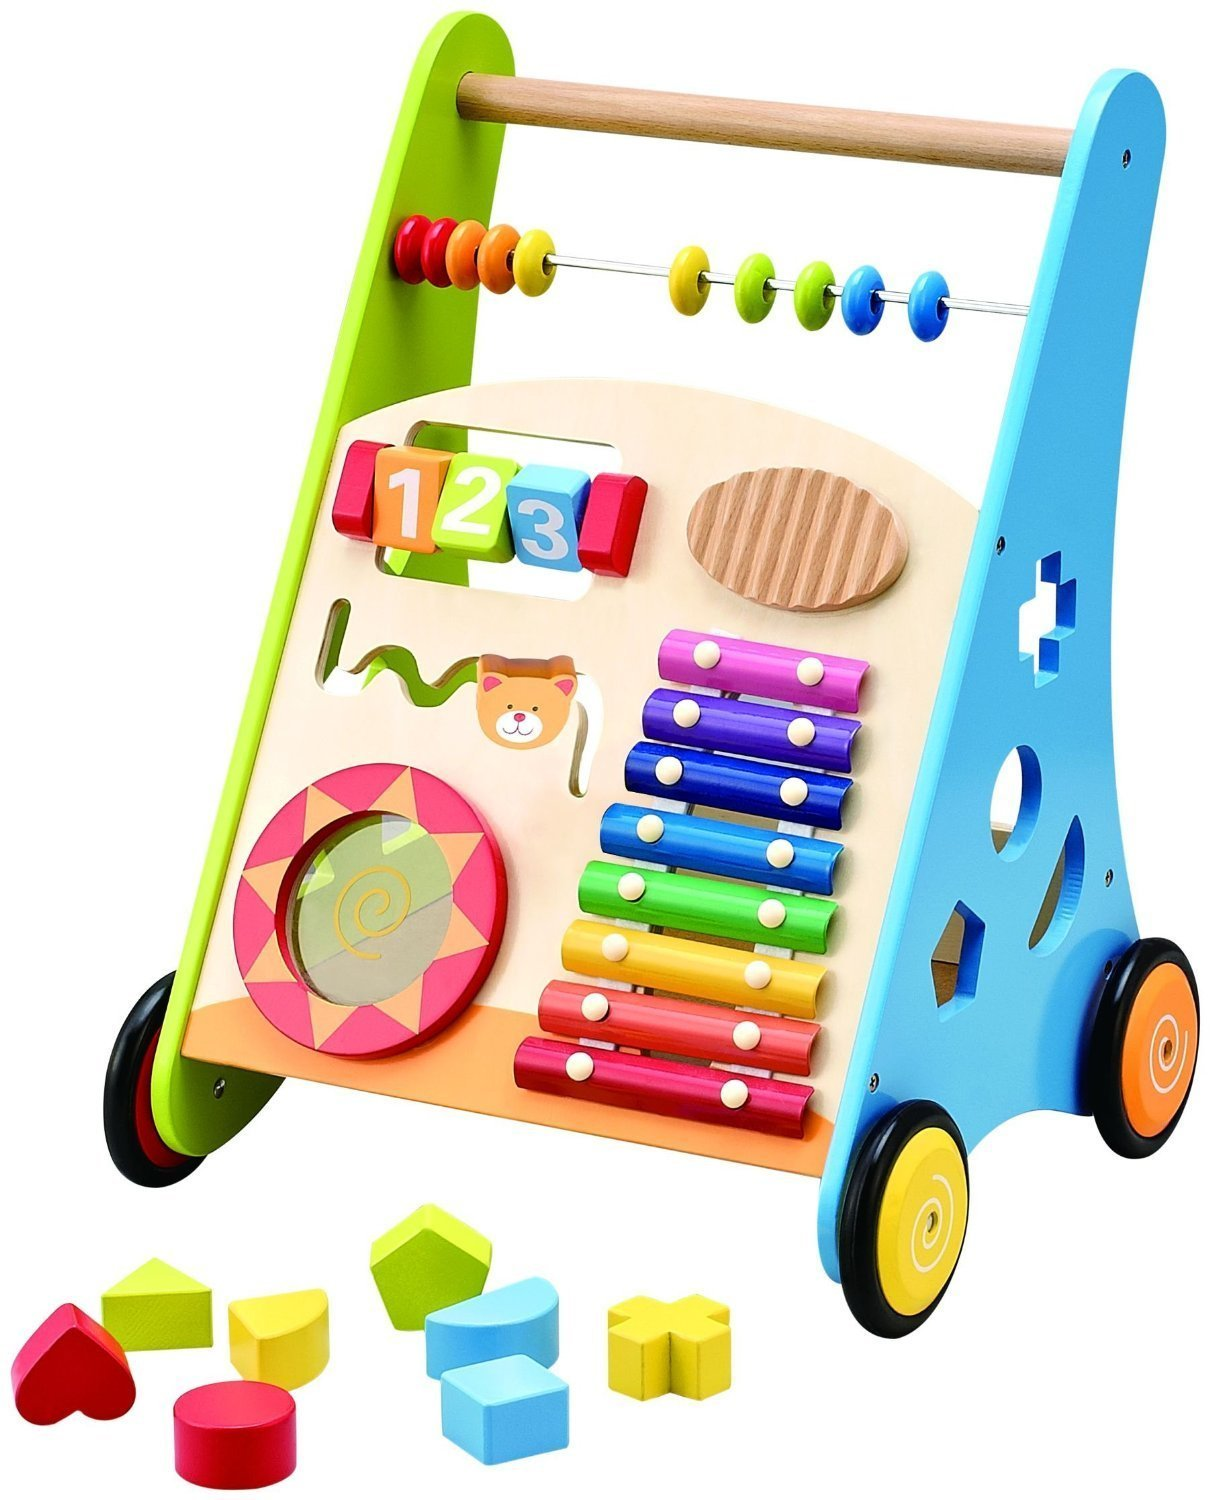 Pidoko Kids Block and Roll Cart - Wooden Push and Pull Baby Walker with Multiple Activity Centre by Pidoko Kids (Image #4)